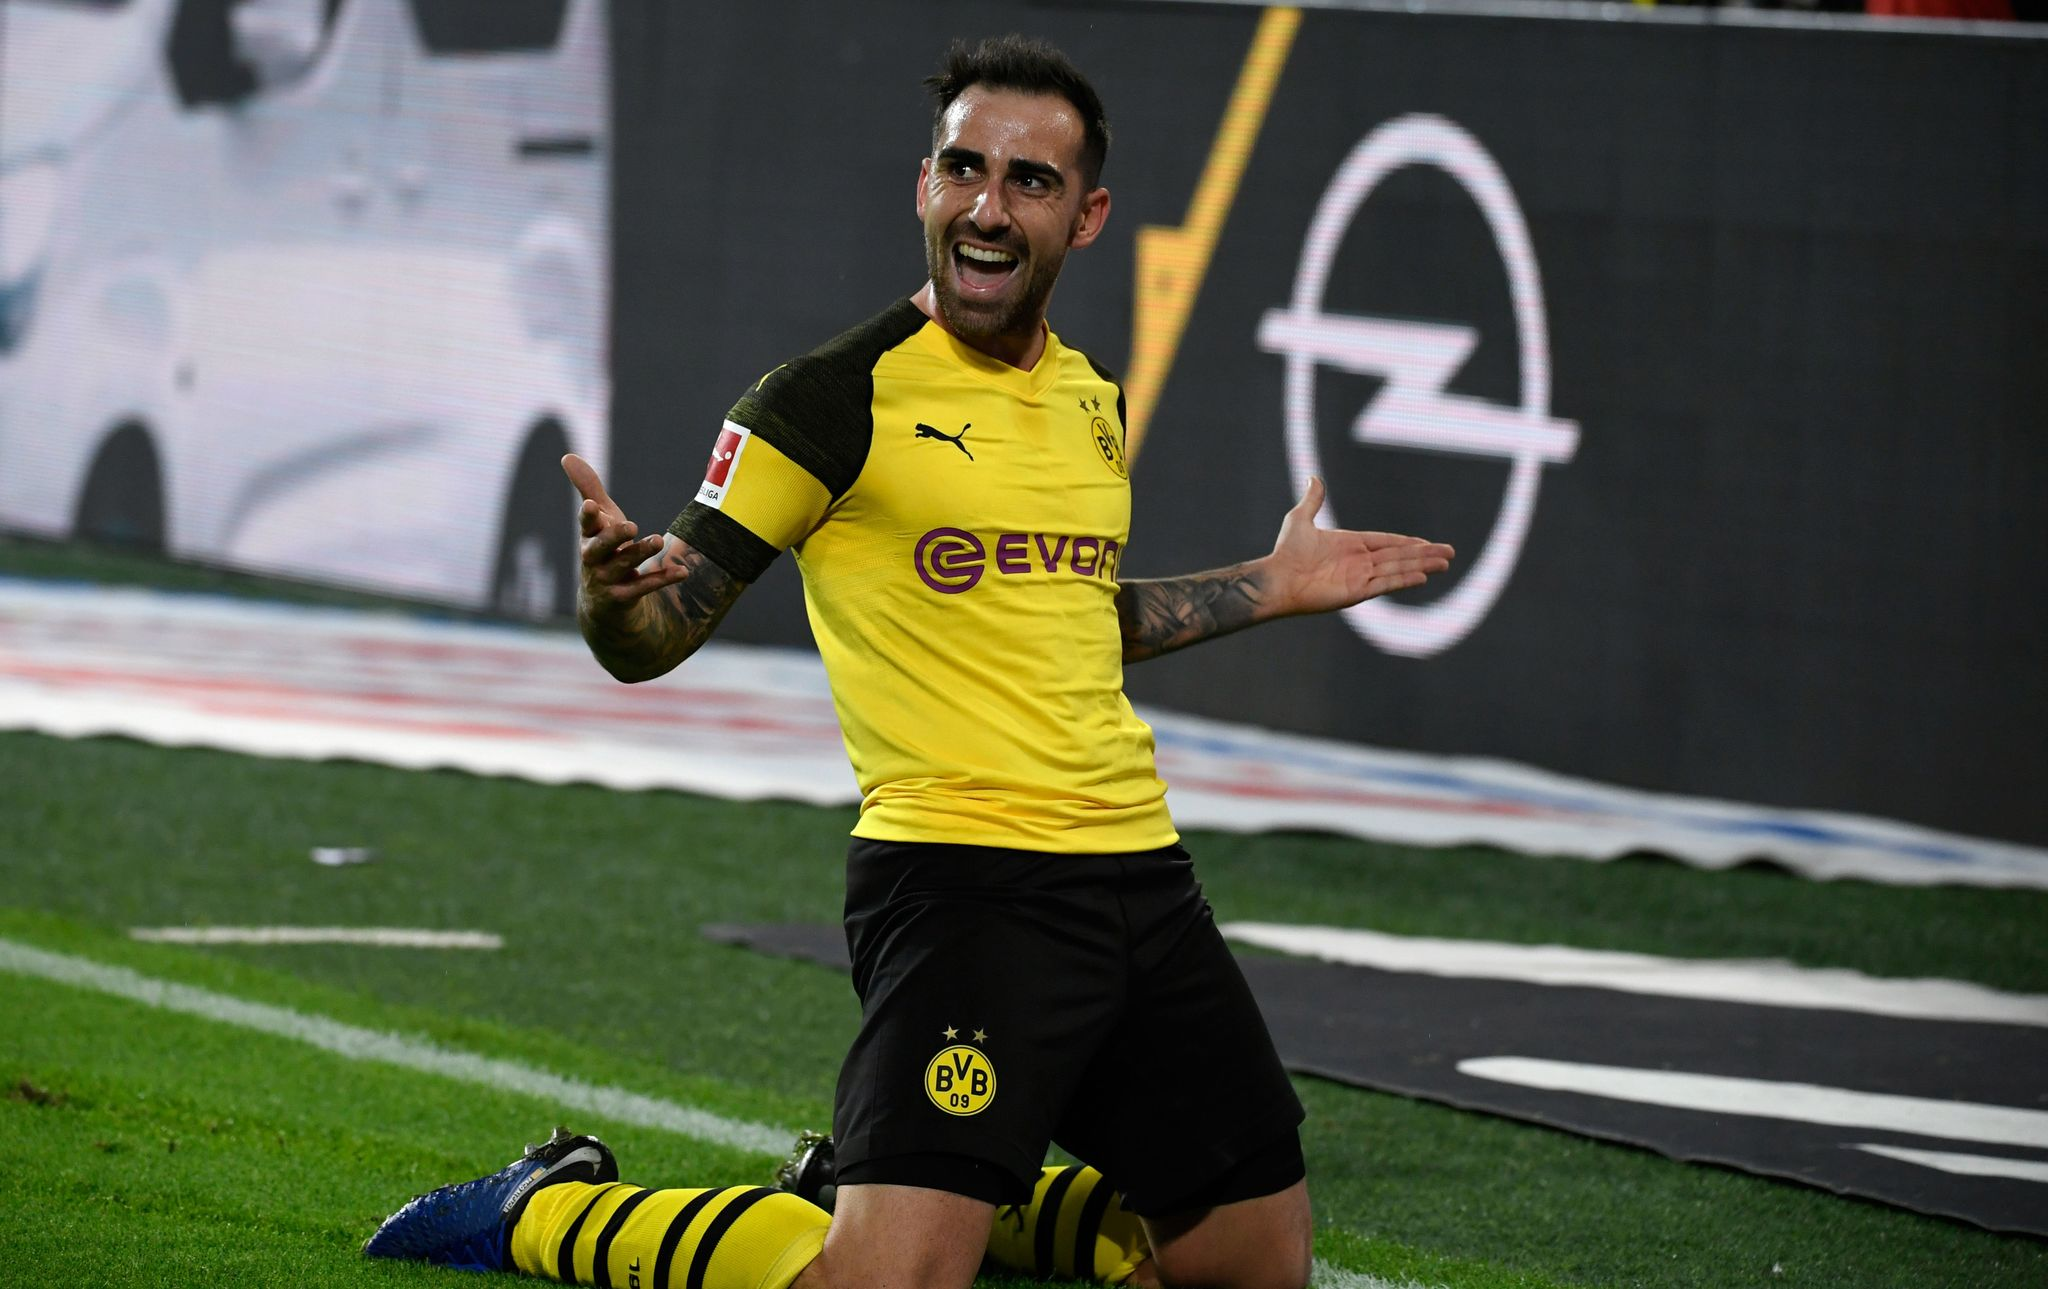 Dortmunds Spanish forward lt;HIT gt;Paco lt;/HIT gt; lt;HIT gt;Alcacer lt;/HIT gt; celebrate after scoring the 3-2 goal during the German first division Bundesliga football match BVB Borussia Dortmund v FC Bayern Munich in Dortmund, western Germany, on November 10, 2018. (Photo by Ina Fassbender / dpa / AFP) / Germany OUT / DFL REGULATIONS PROHIBIT ANY USE OF PHOTOGRAPHS AS IMAGE SEQUENCES AND/OR QUASI-VIDEO